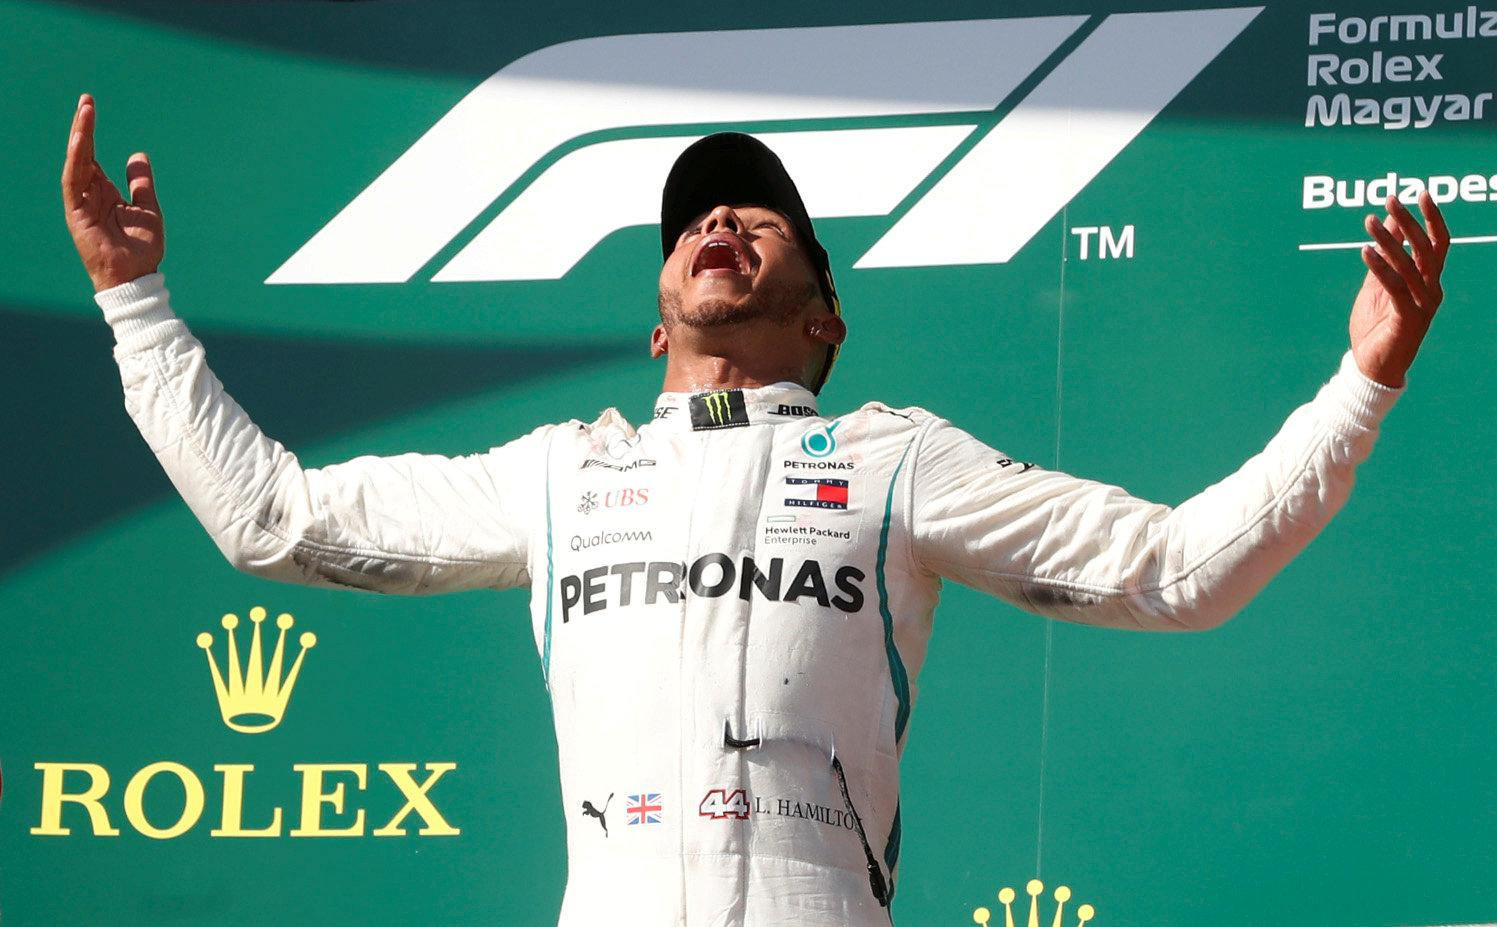 Lewis Hamilton is going to party hard after winning the Hungarian Grand Prix